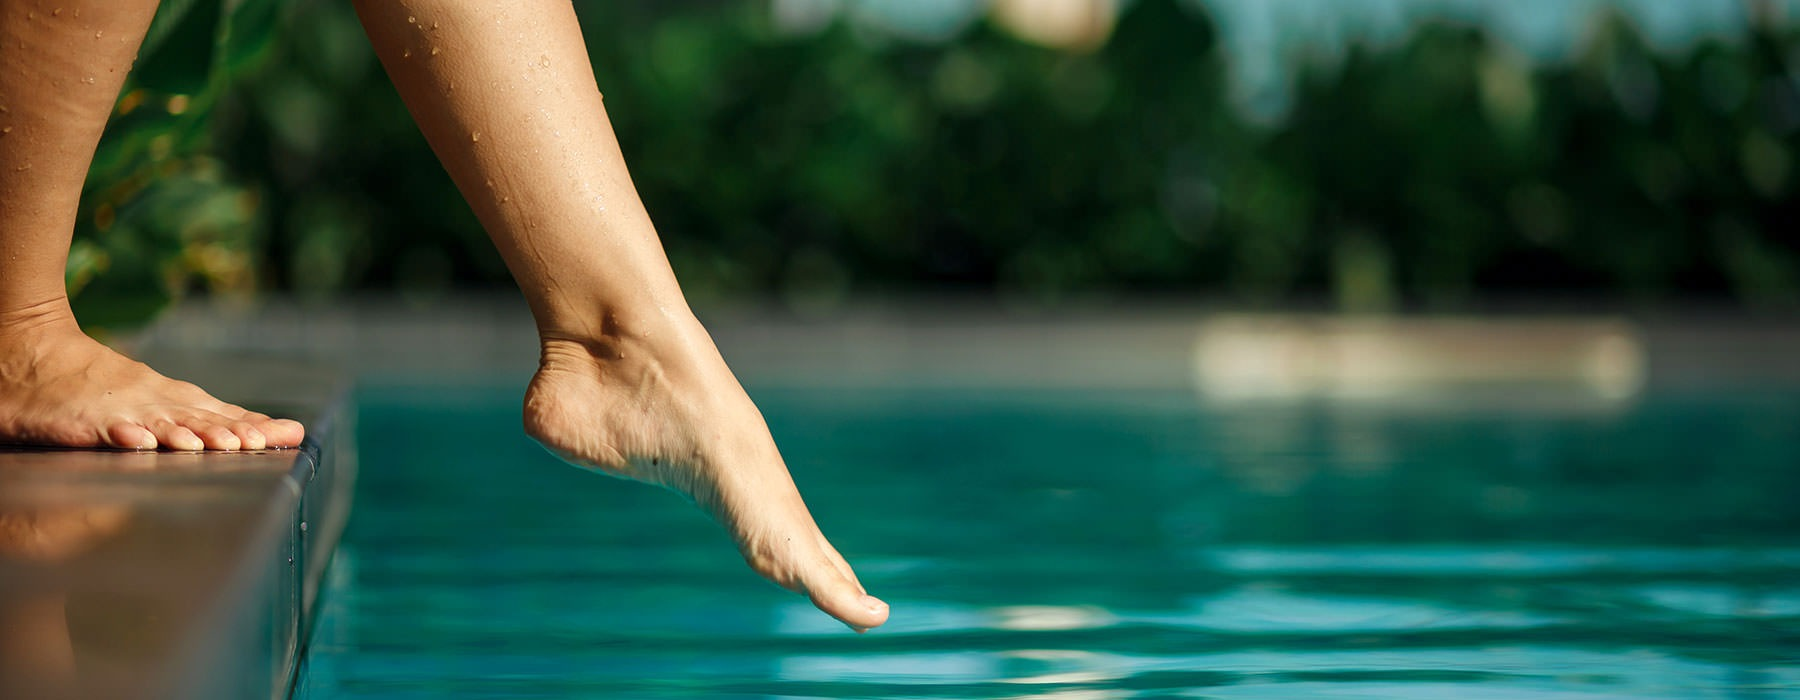 lifestyle image of a woman dipping her feet into a pool